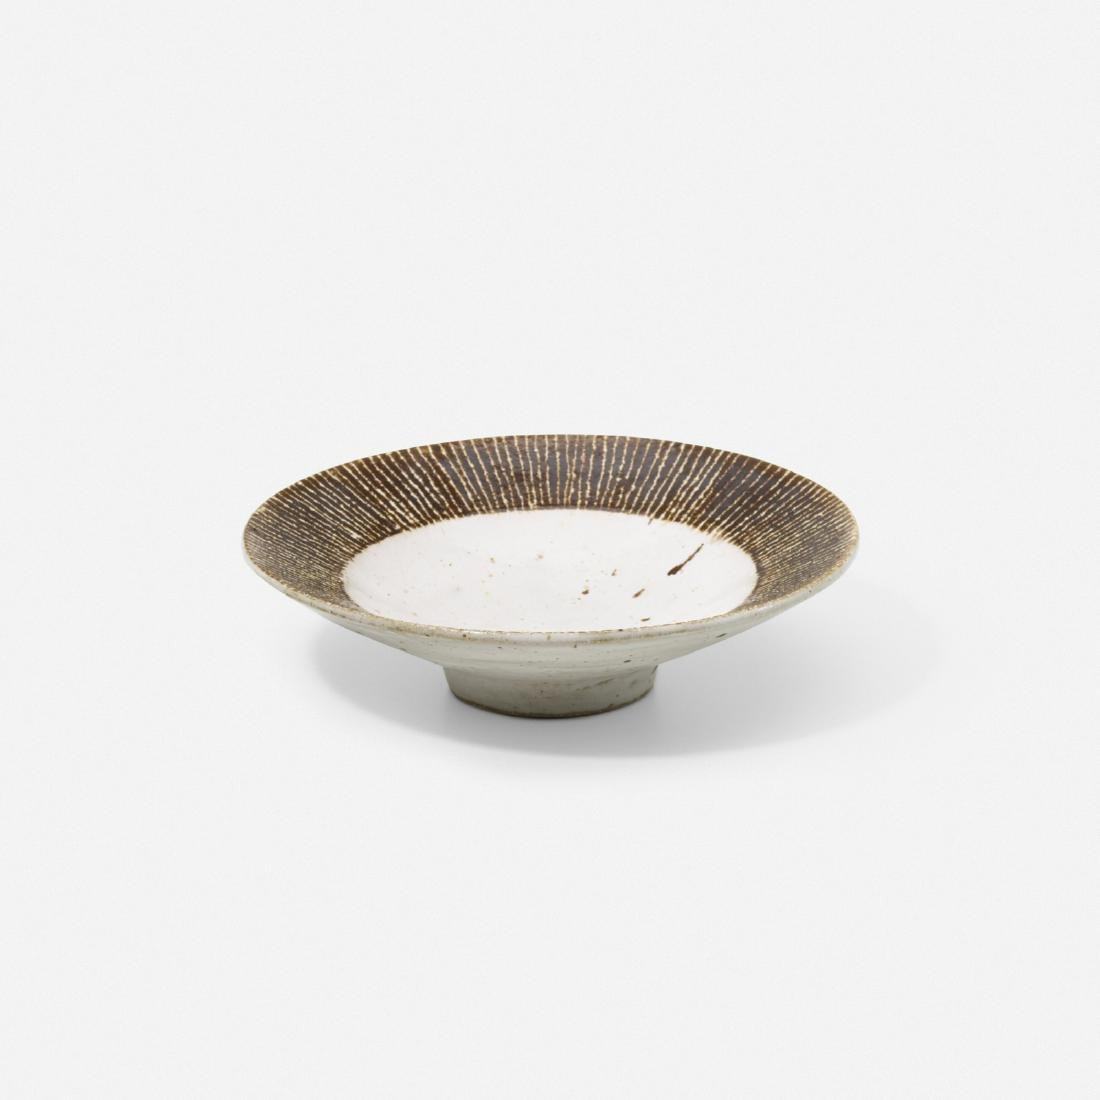 Lucie Rie, bowl